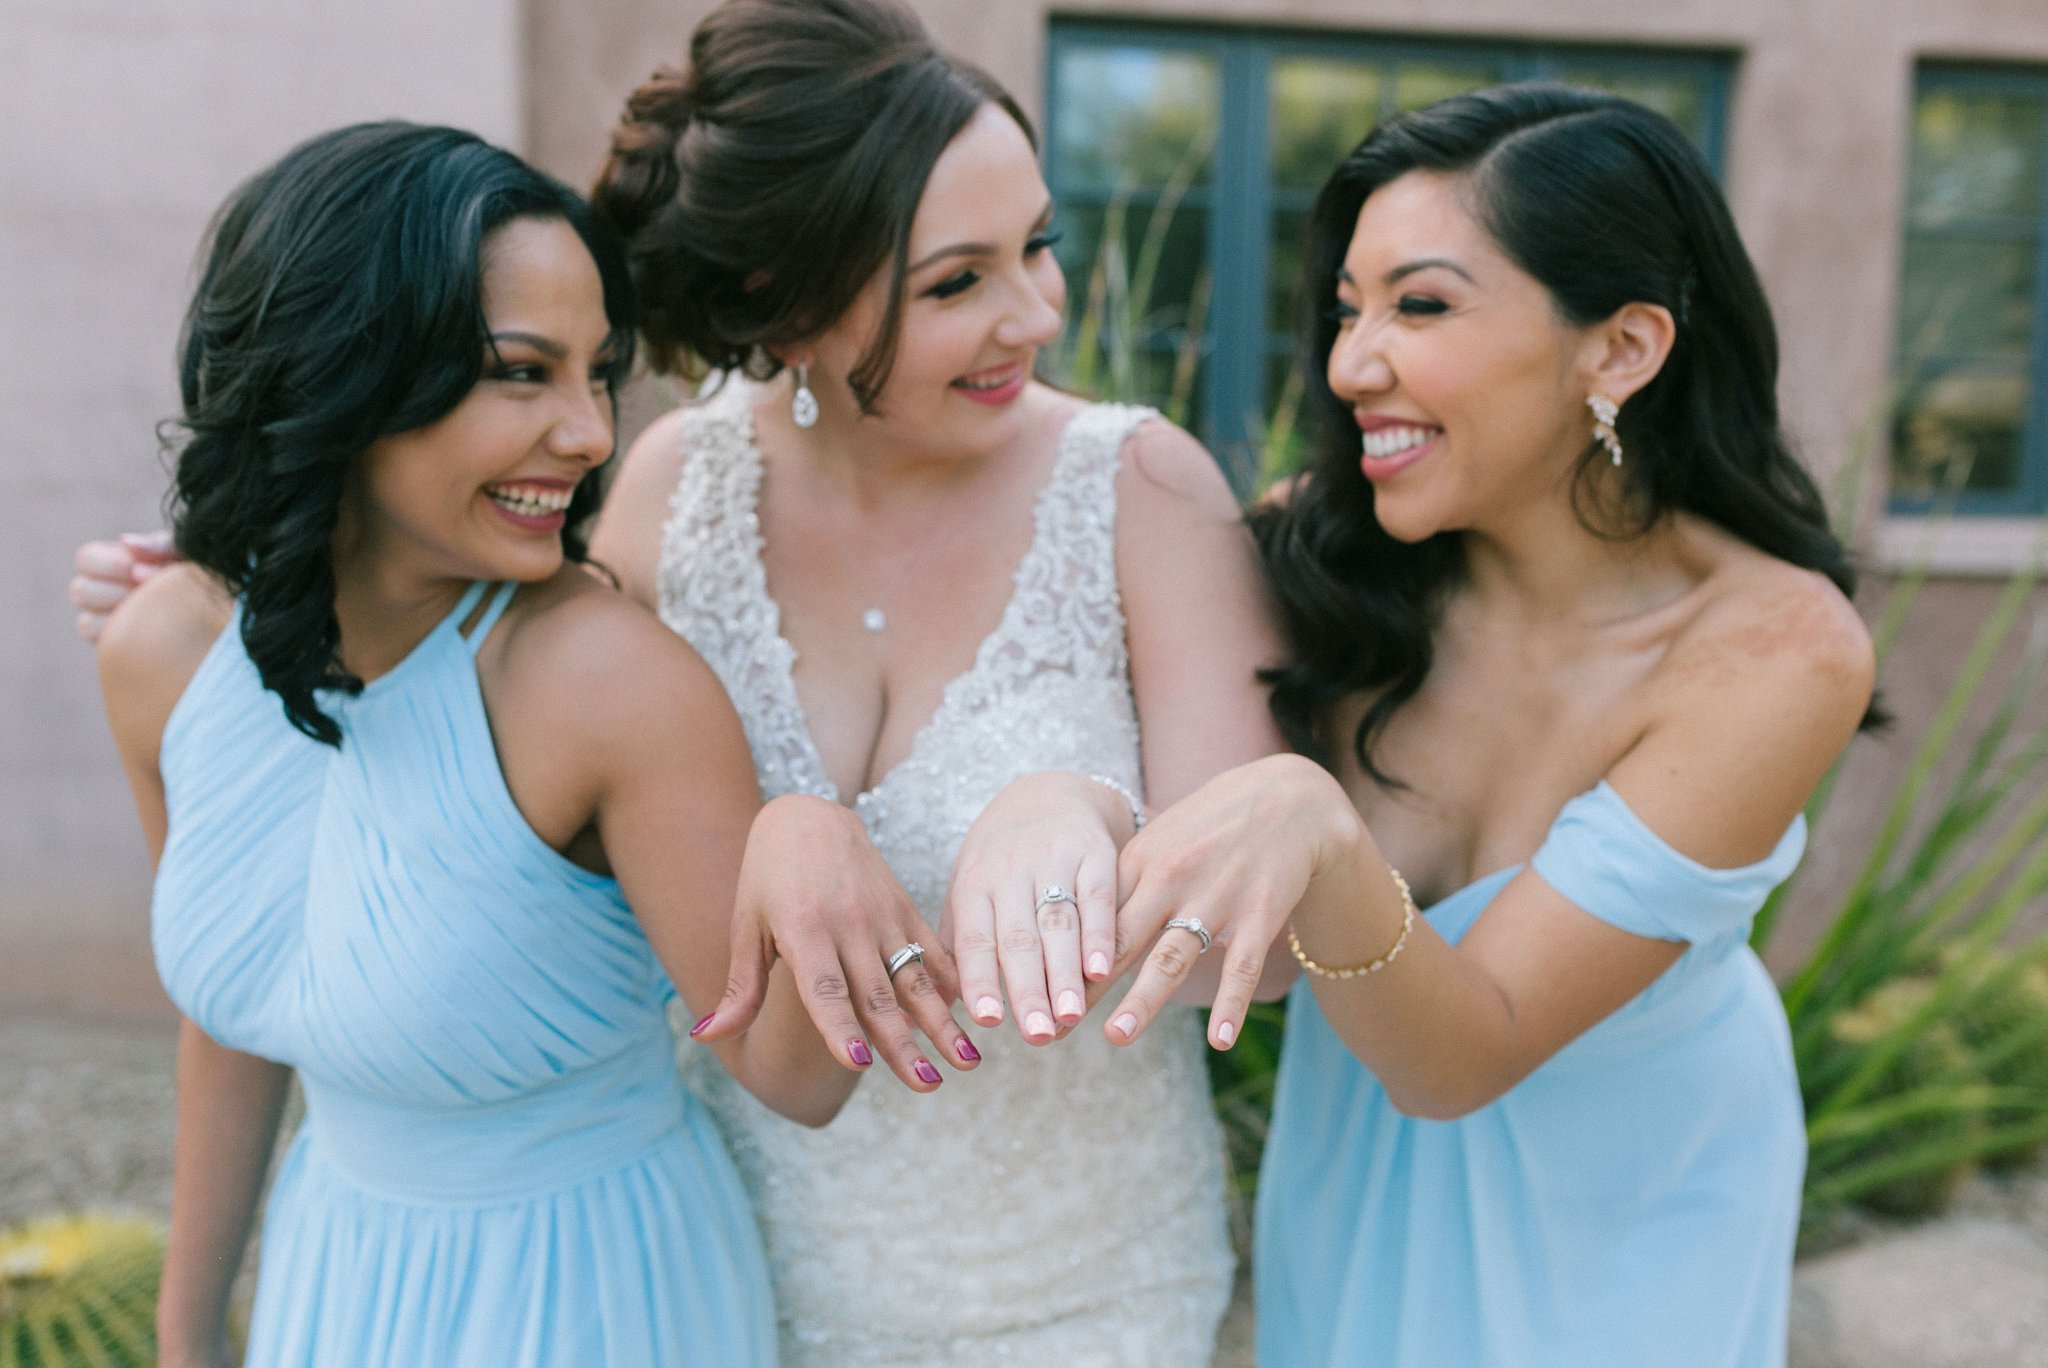 bridesmaids and bride with wedding rings laughing